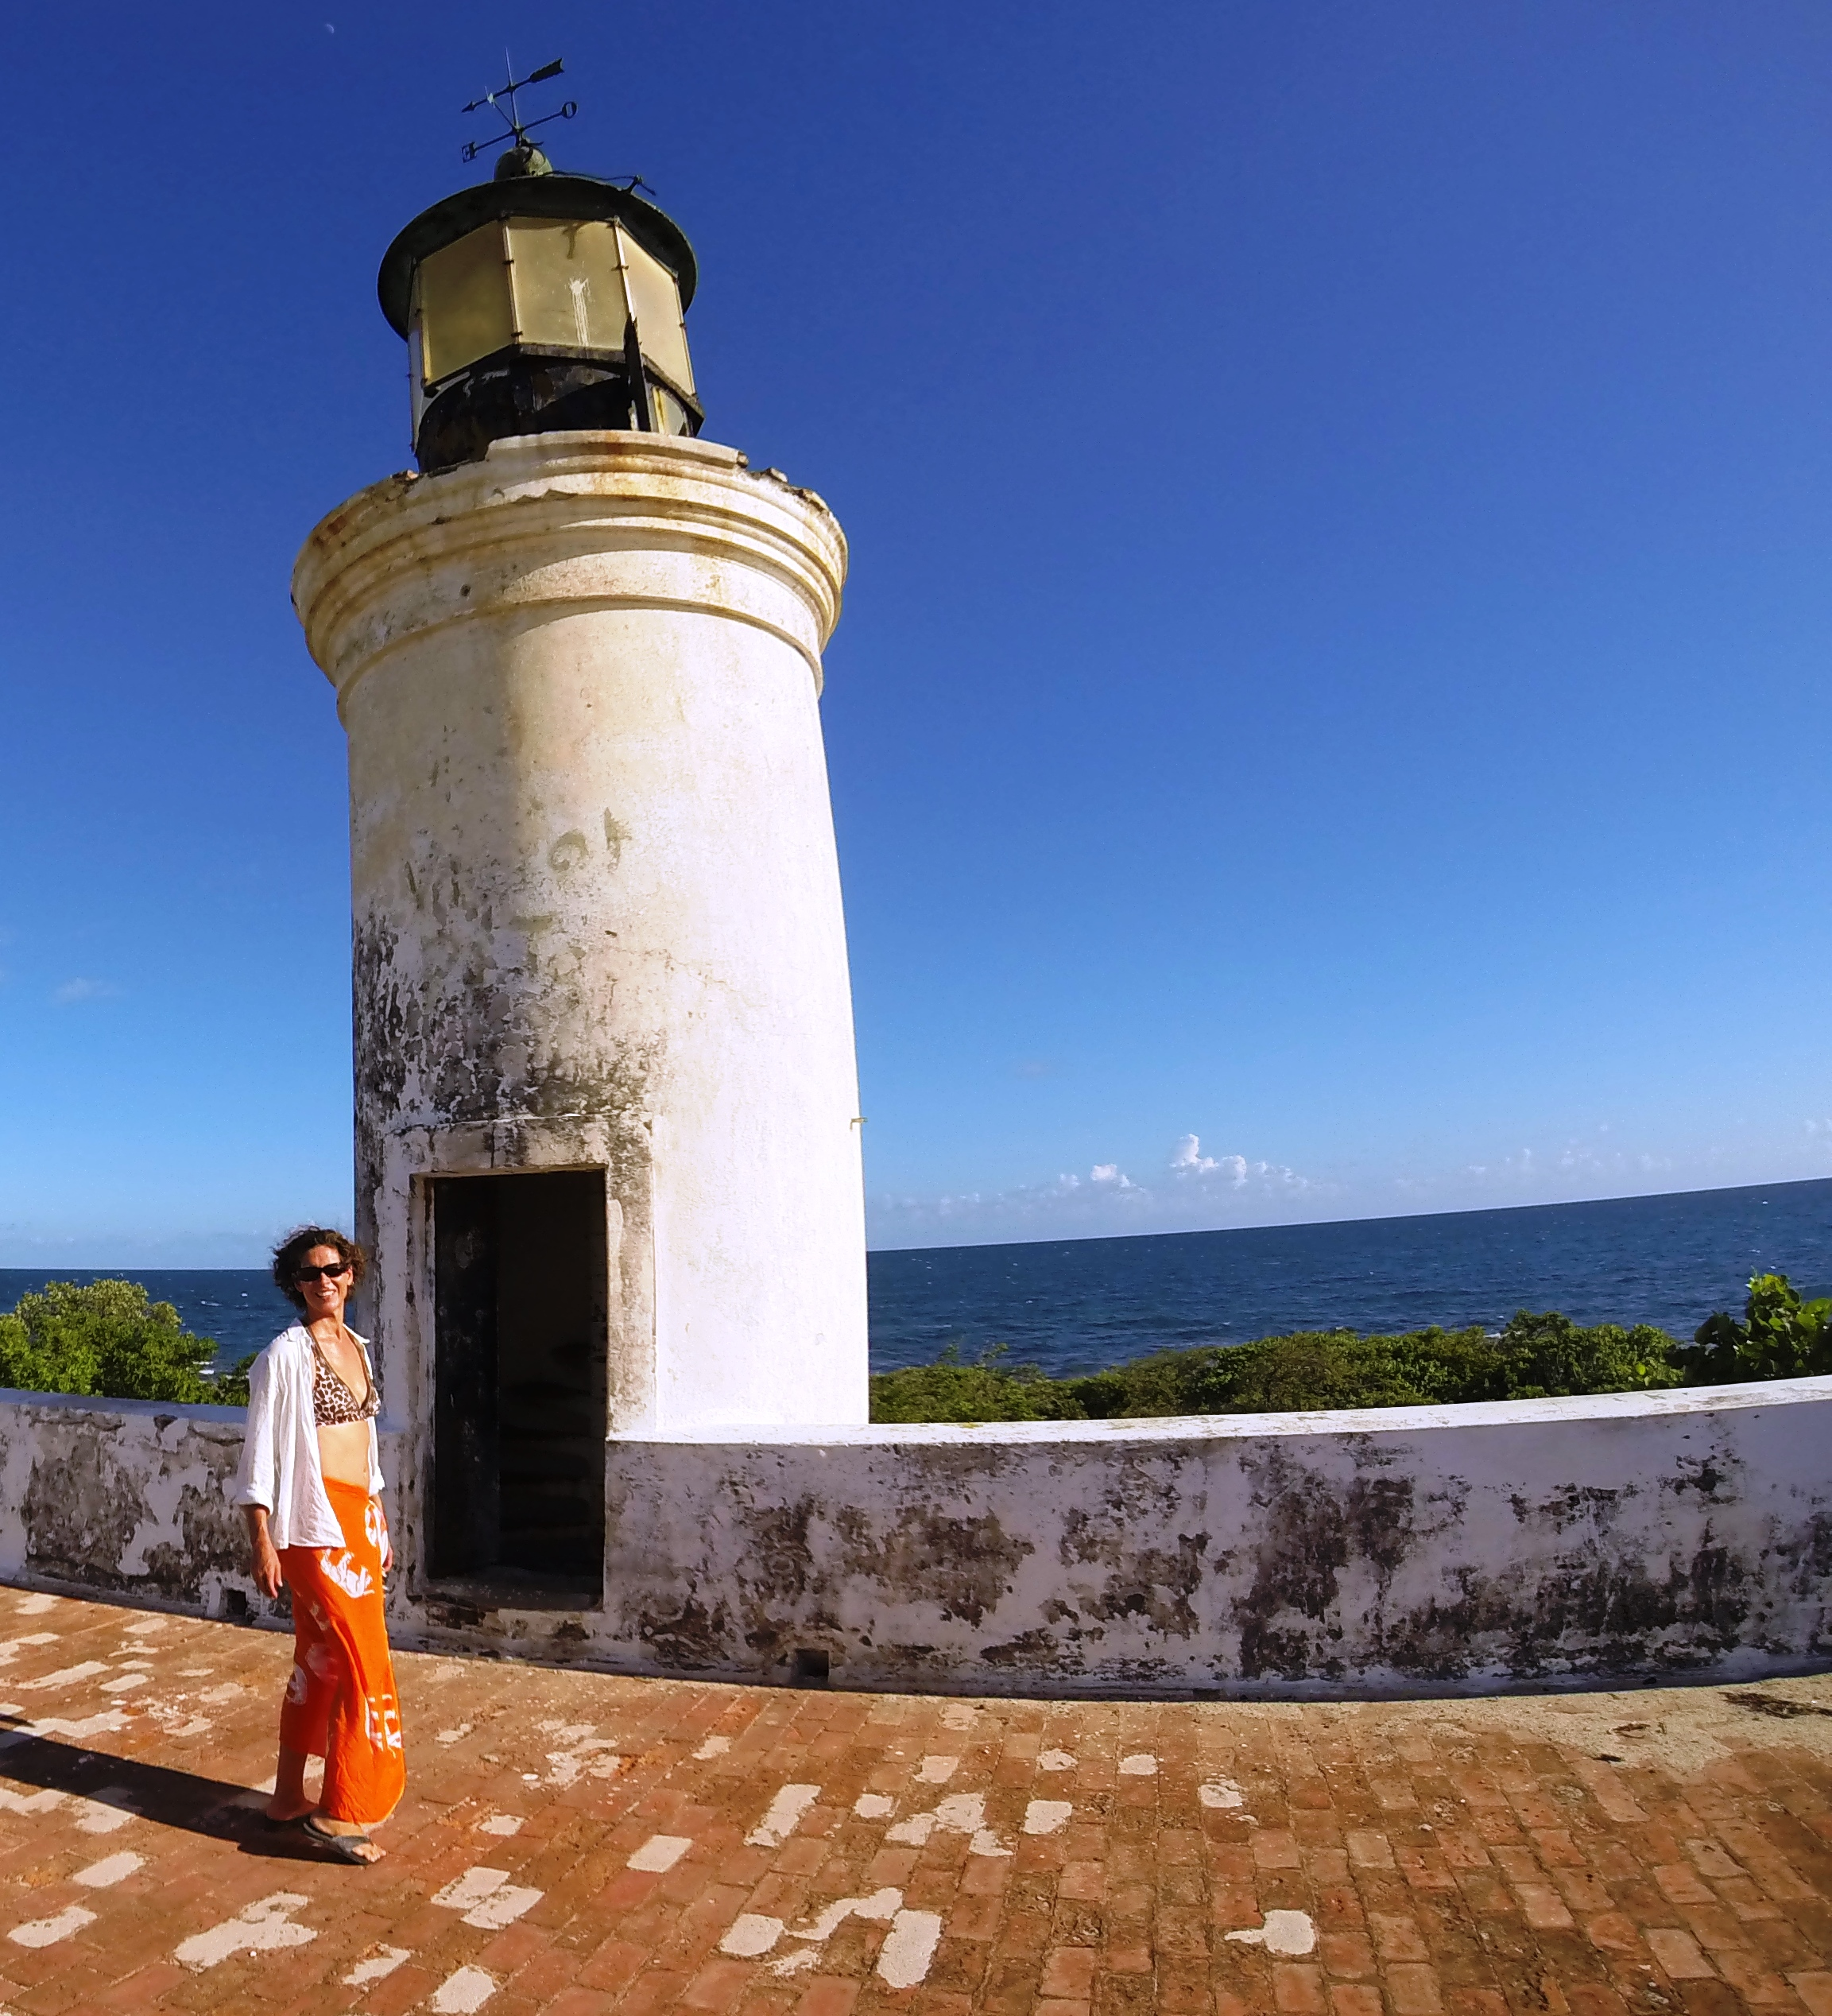 Lighthouse on Isla Cardona, a small island two miles west of Ponce.